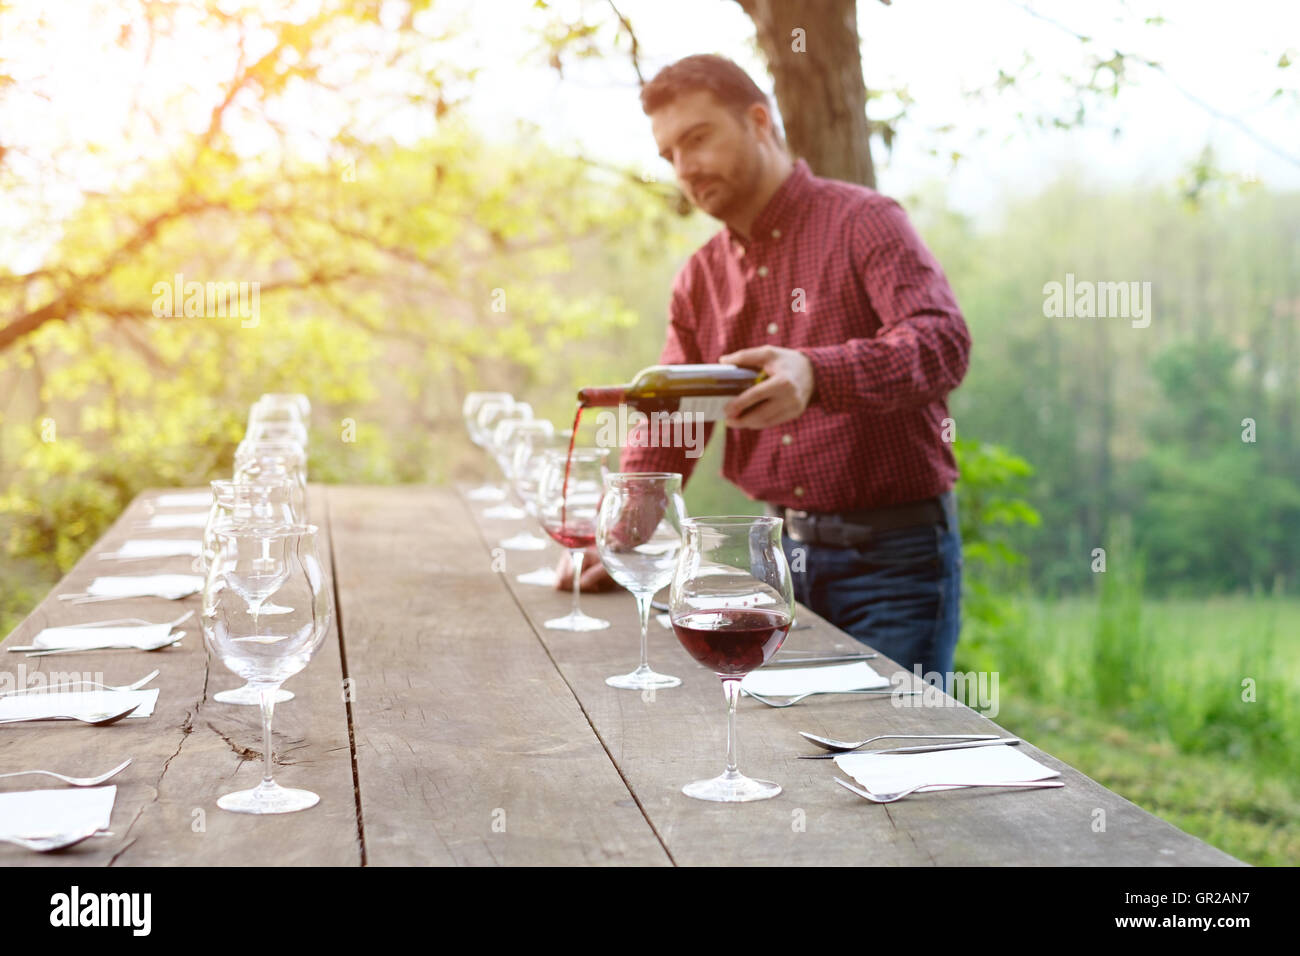 portrait of wine producer pouring red wine into wine glasses - Stock Image